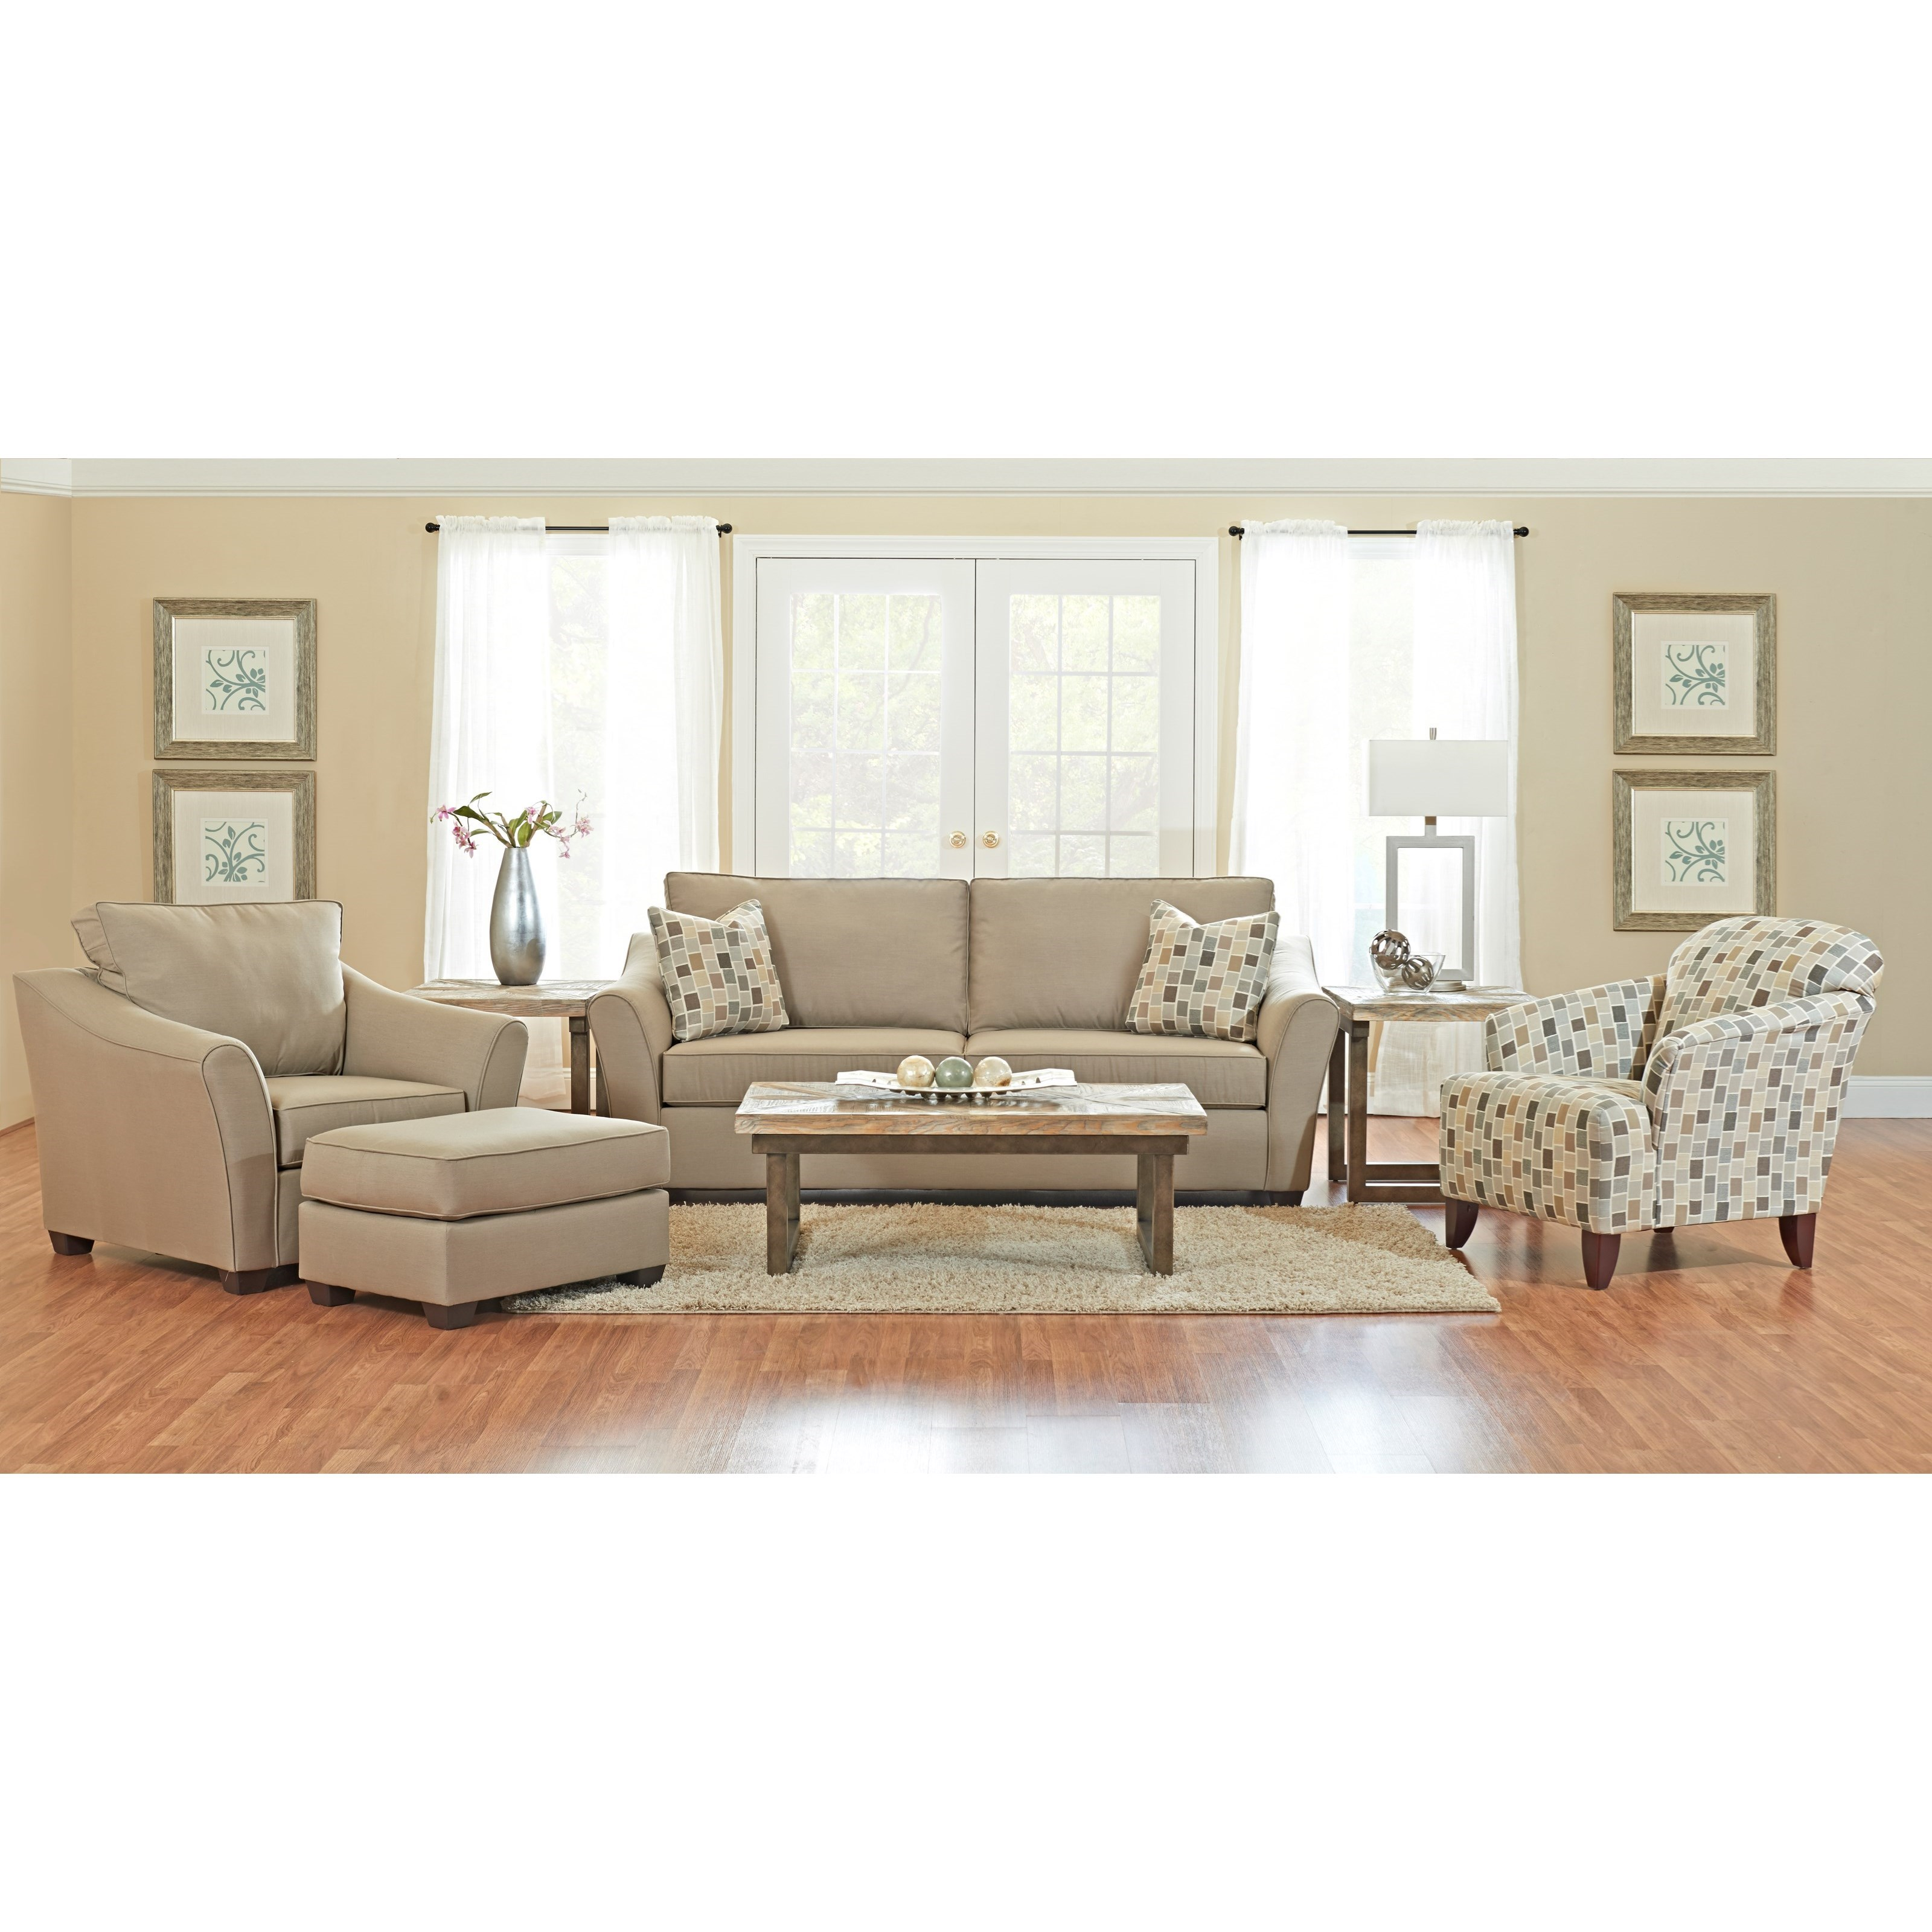 Linville Living Room Group by Klaussner at Nassau Furniture and Mattress